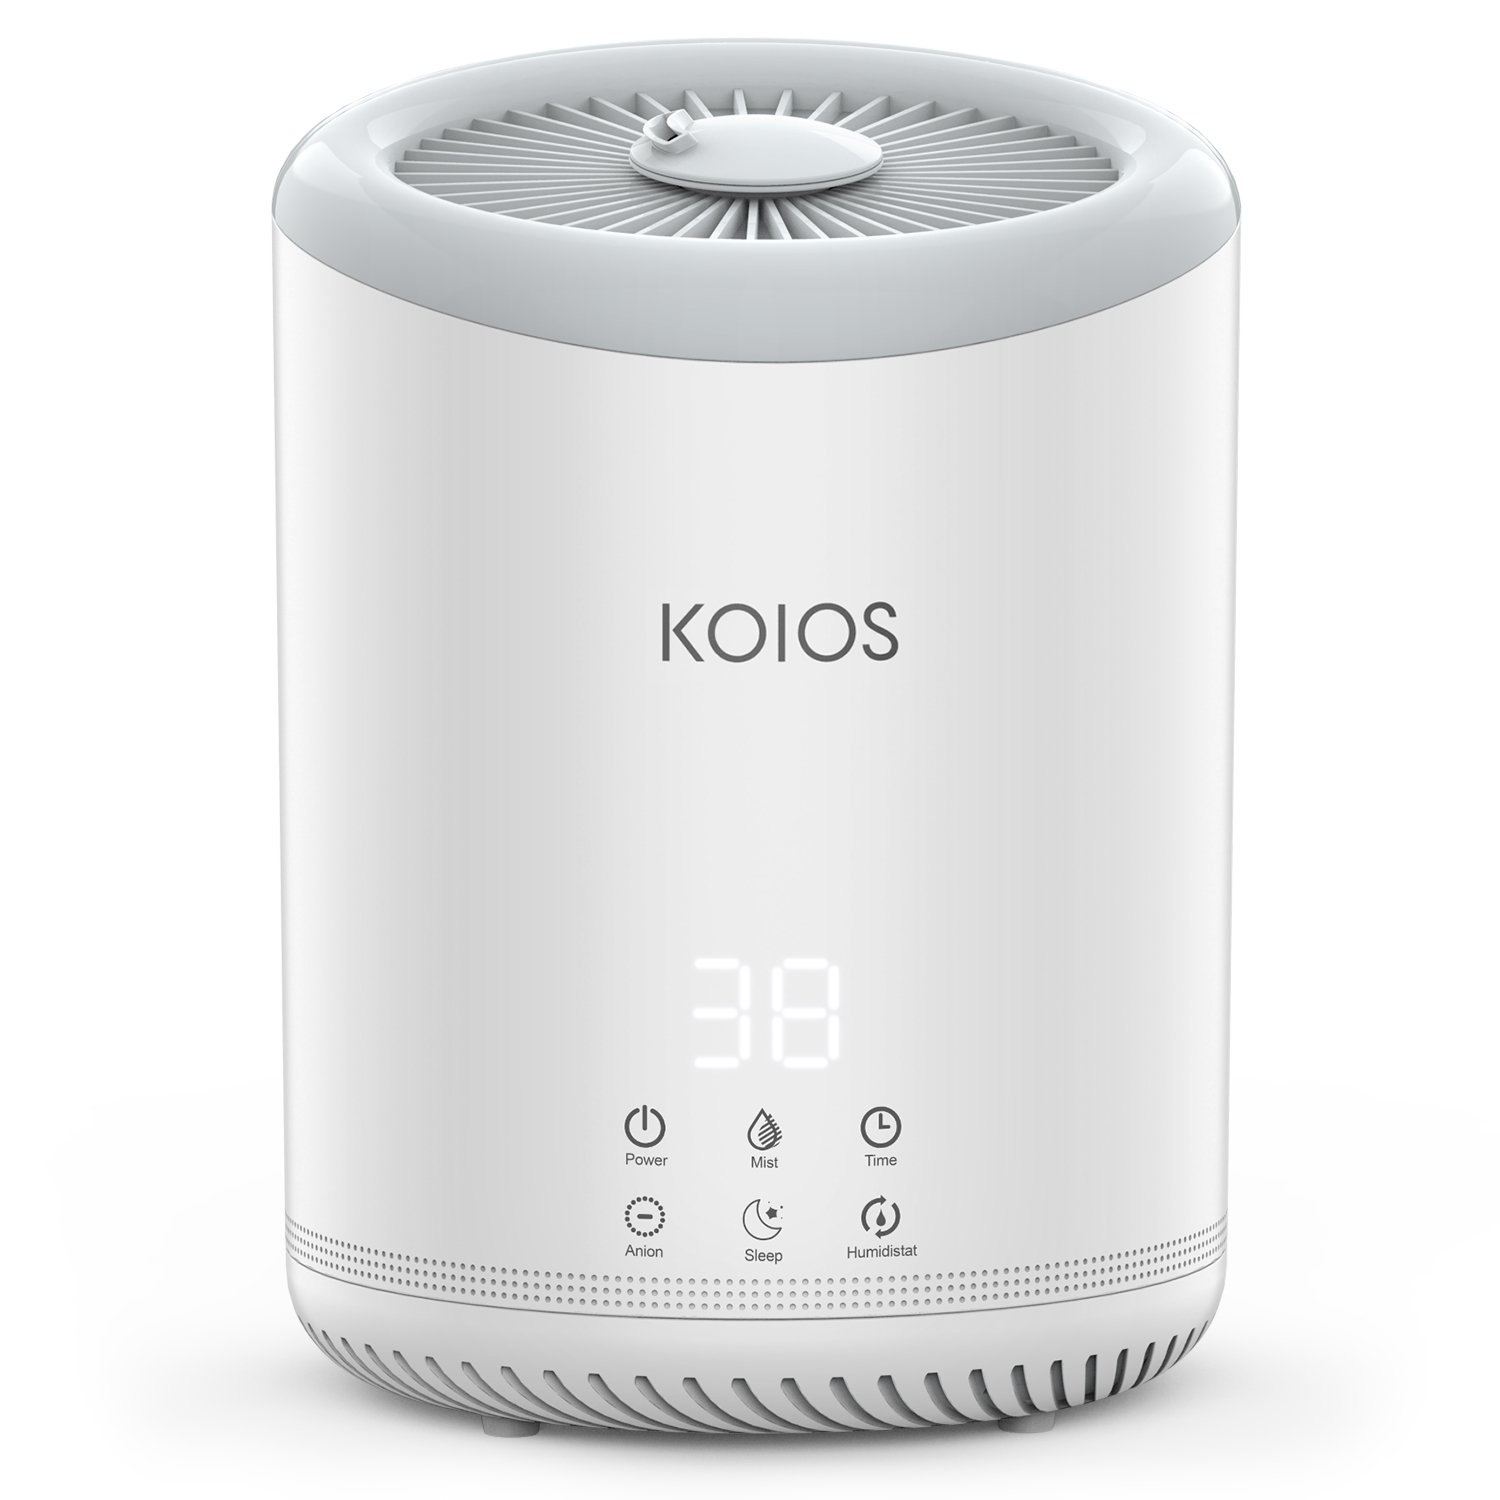 KOIOS Top Fill Humidifier - 4L/1.1Gallon Ultrasonic Cool Mist Humidifier with 3 Adjustable Mist settings, Open Water Tank, Easy to Clean, Timer, Sleep Mode for office bedroom baby room - White